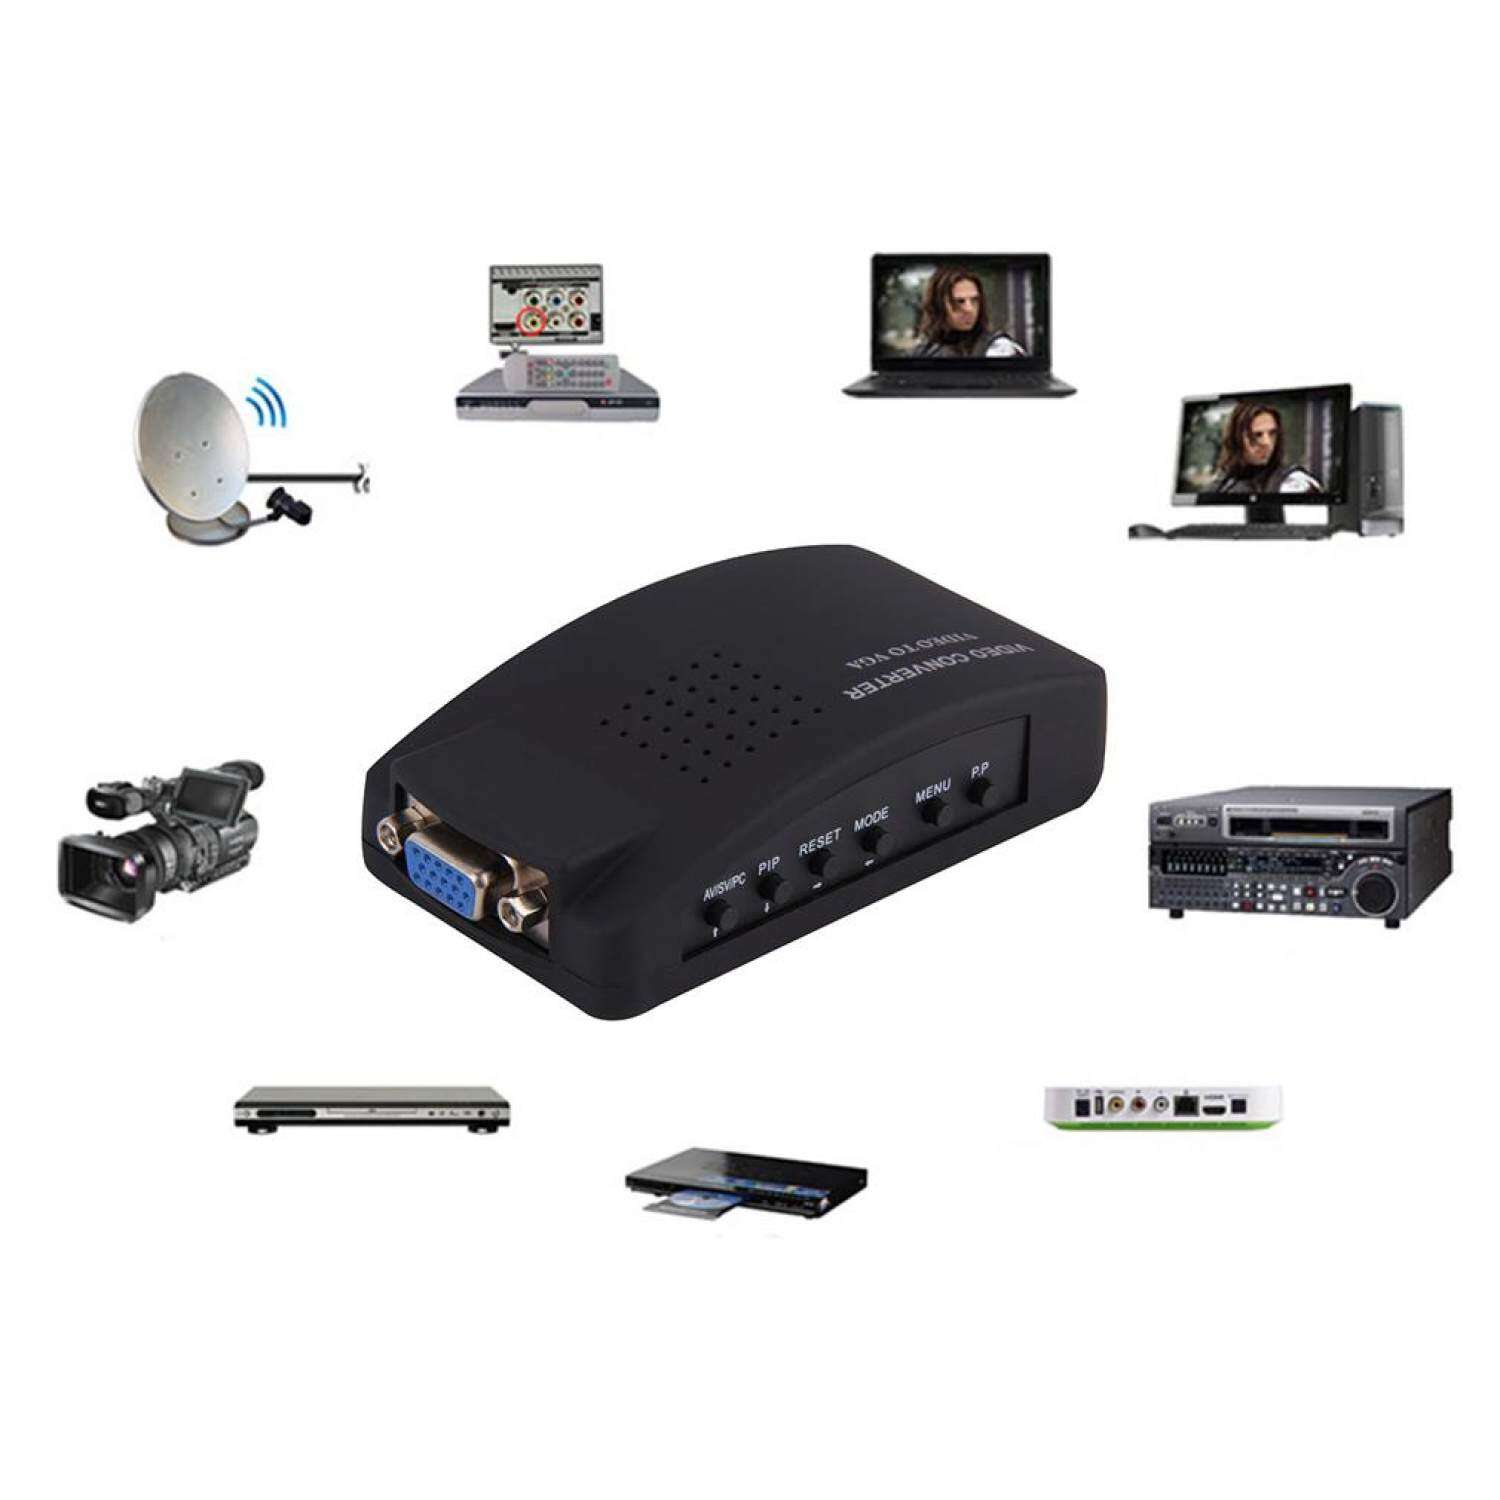 Buy Sell Cheapest Osman Tv Av Best Quality Product Deals Vga To Rca Converter Pc Composite S Video In Lcd Out Adapter